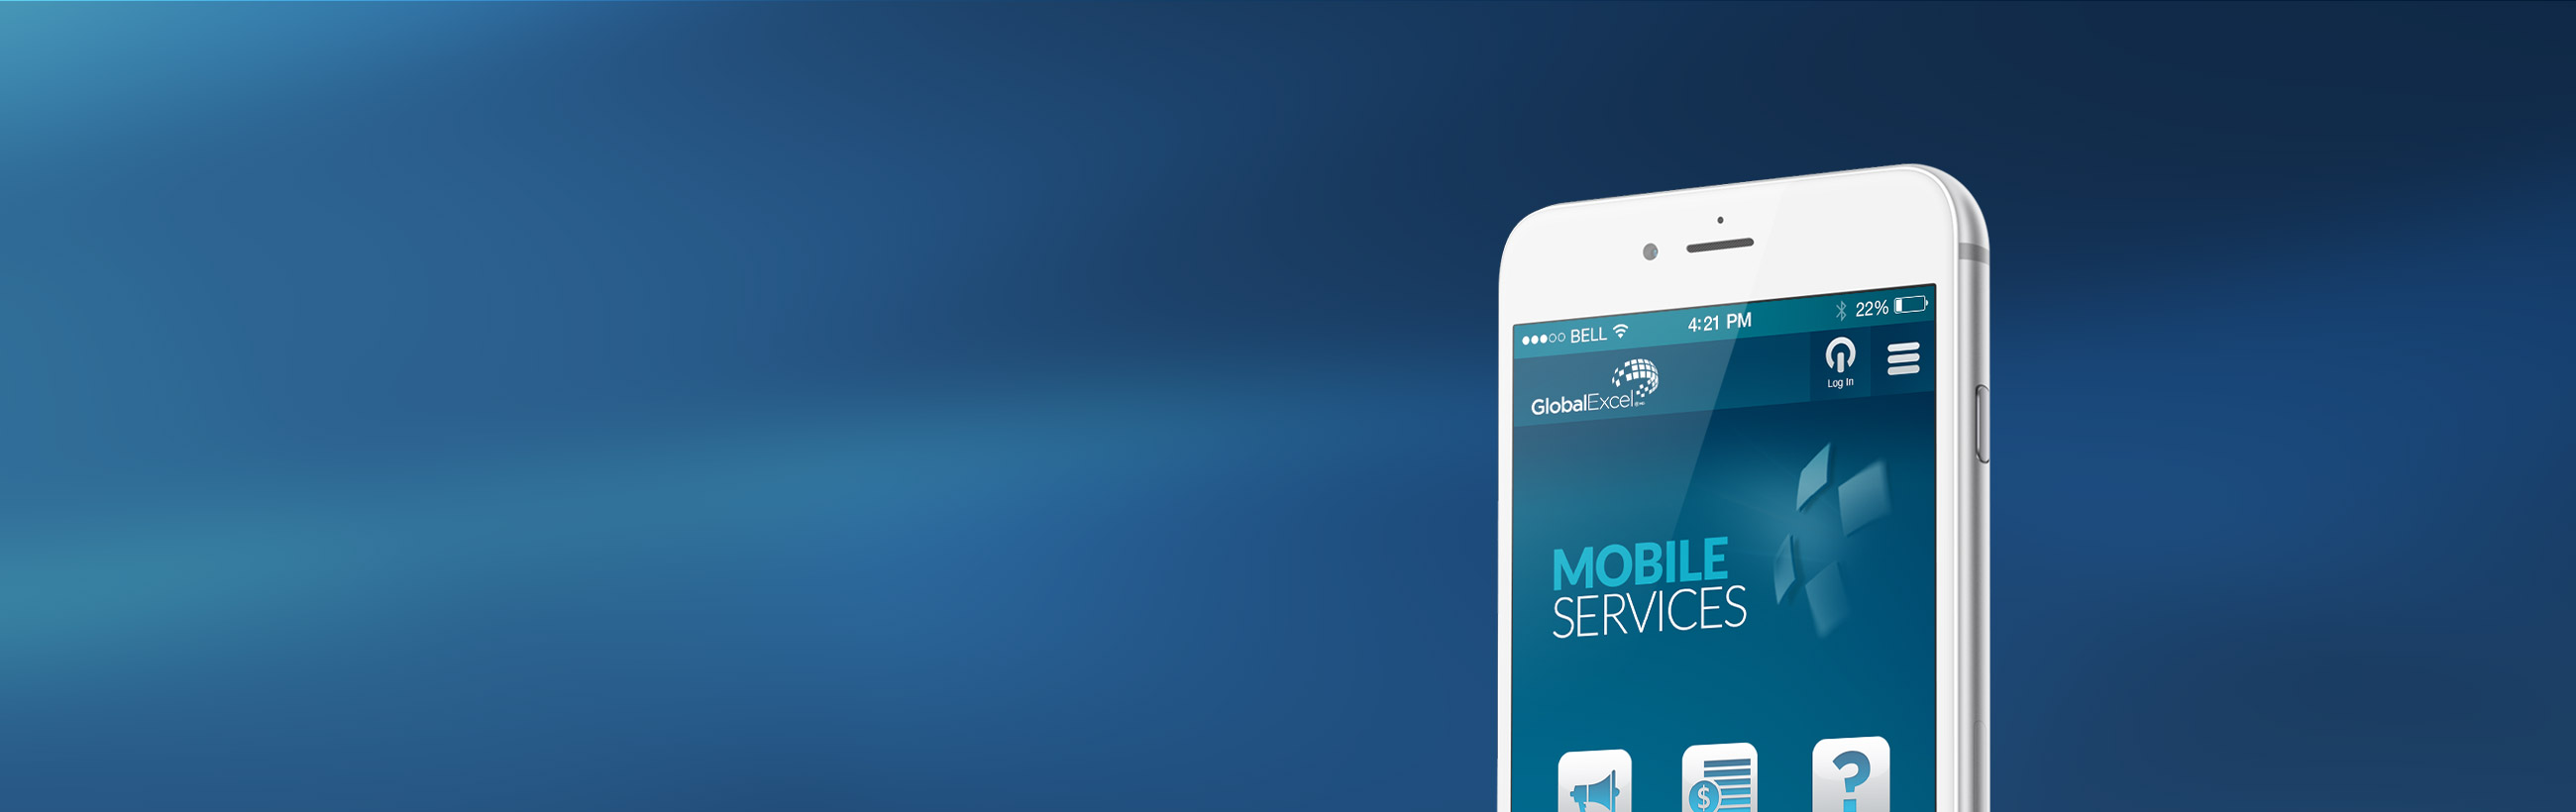 Services mobiles<br />Global Excel